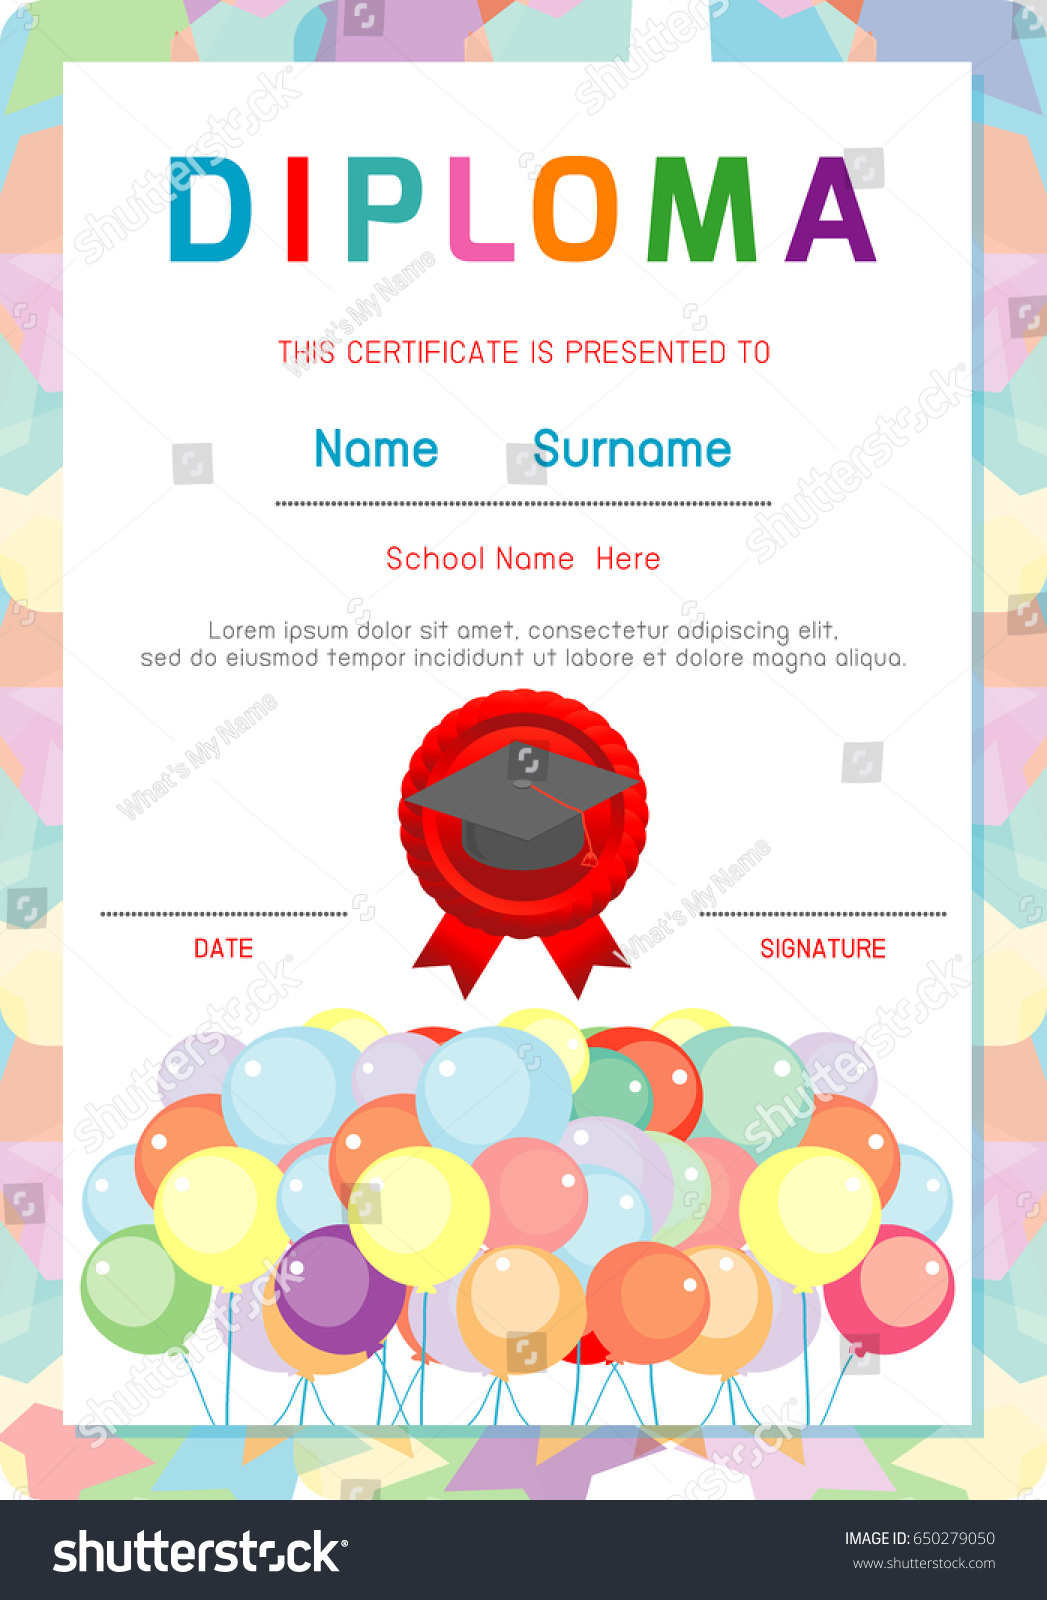 Diploma template kids certificates kindergarten elementary stock diploma template for kids certificates kindergarten and elementary certificate of children diploma vector xflitez Images